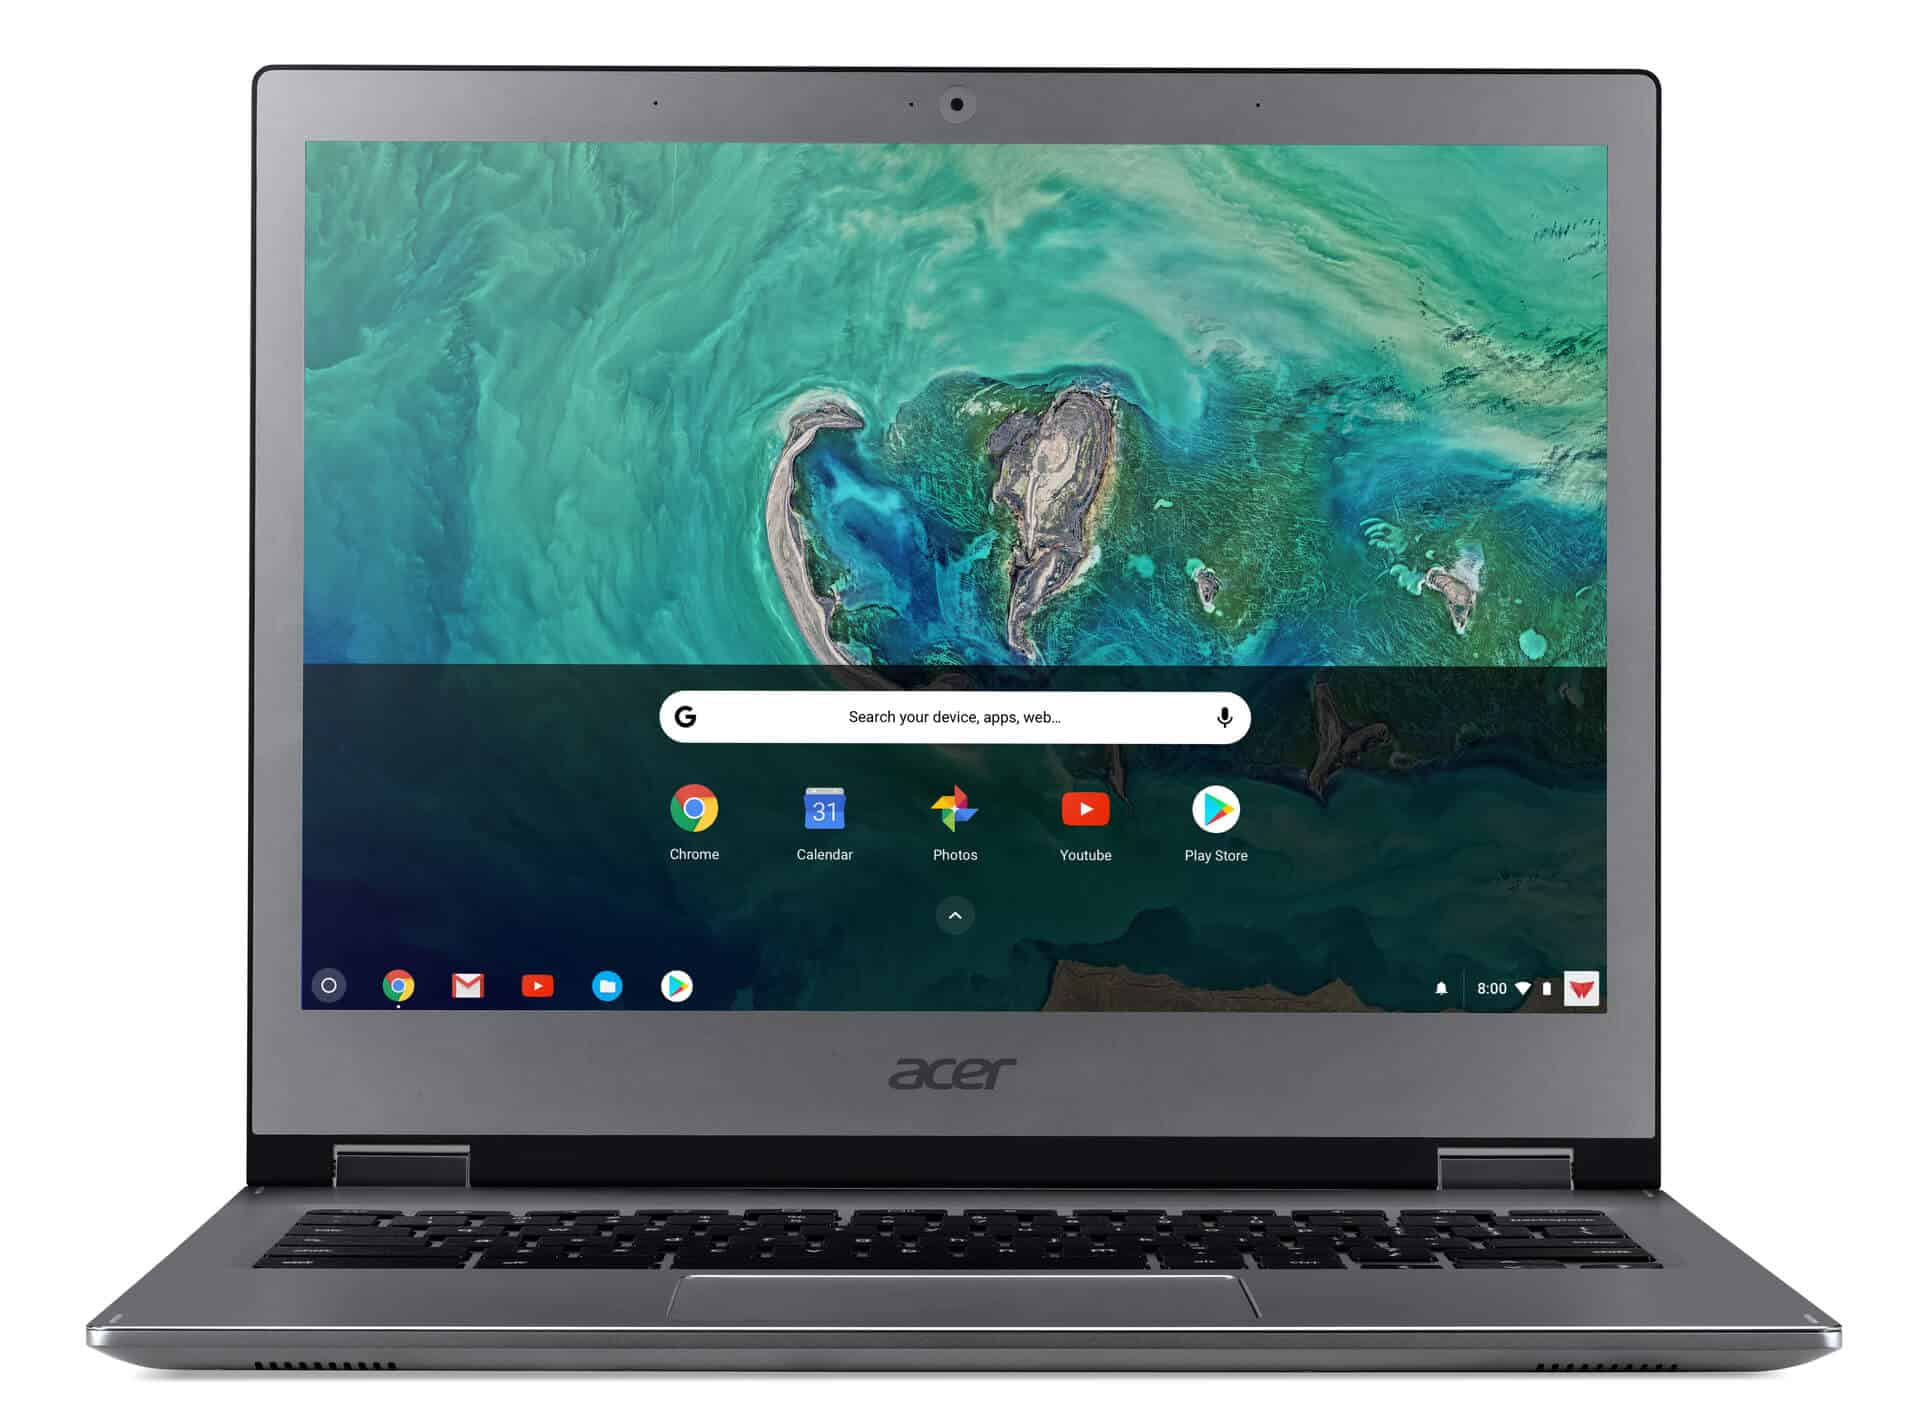 Acer Chromebook 13 front view from Acer 03